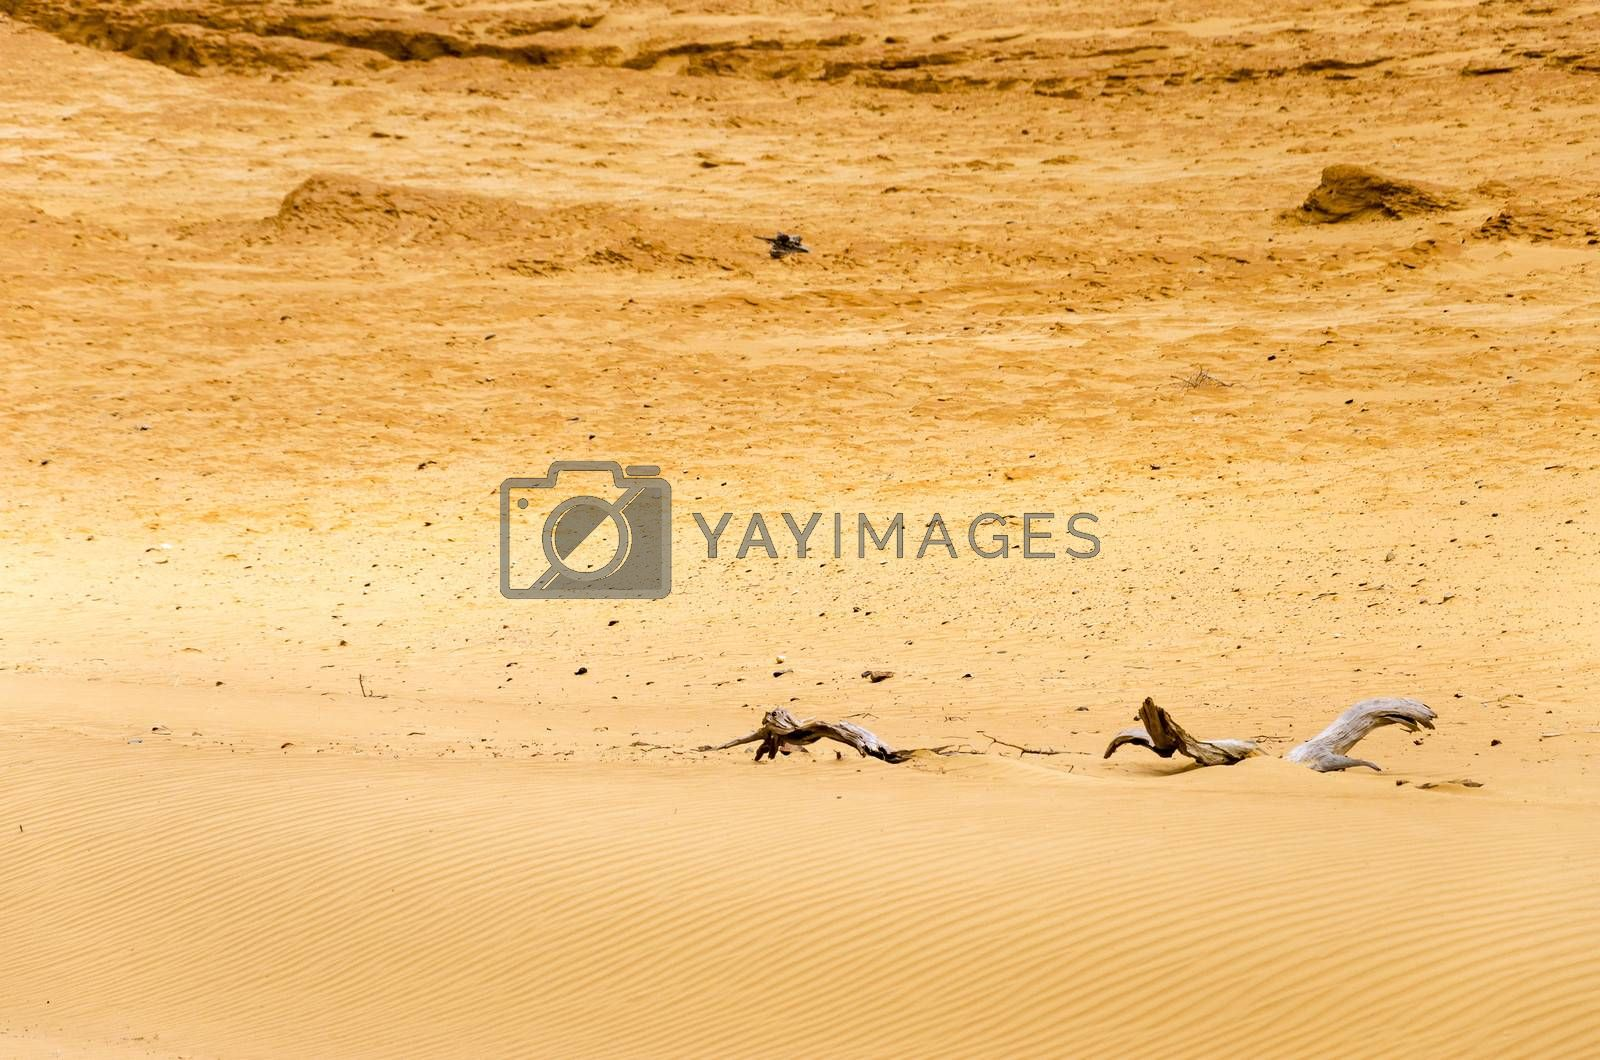 Dry sandy desert with wood from dead trees